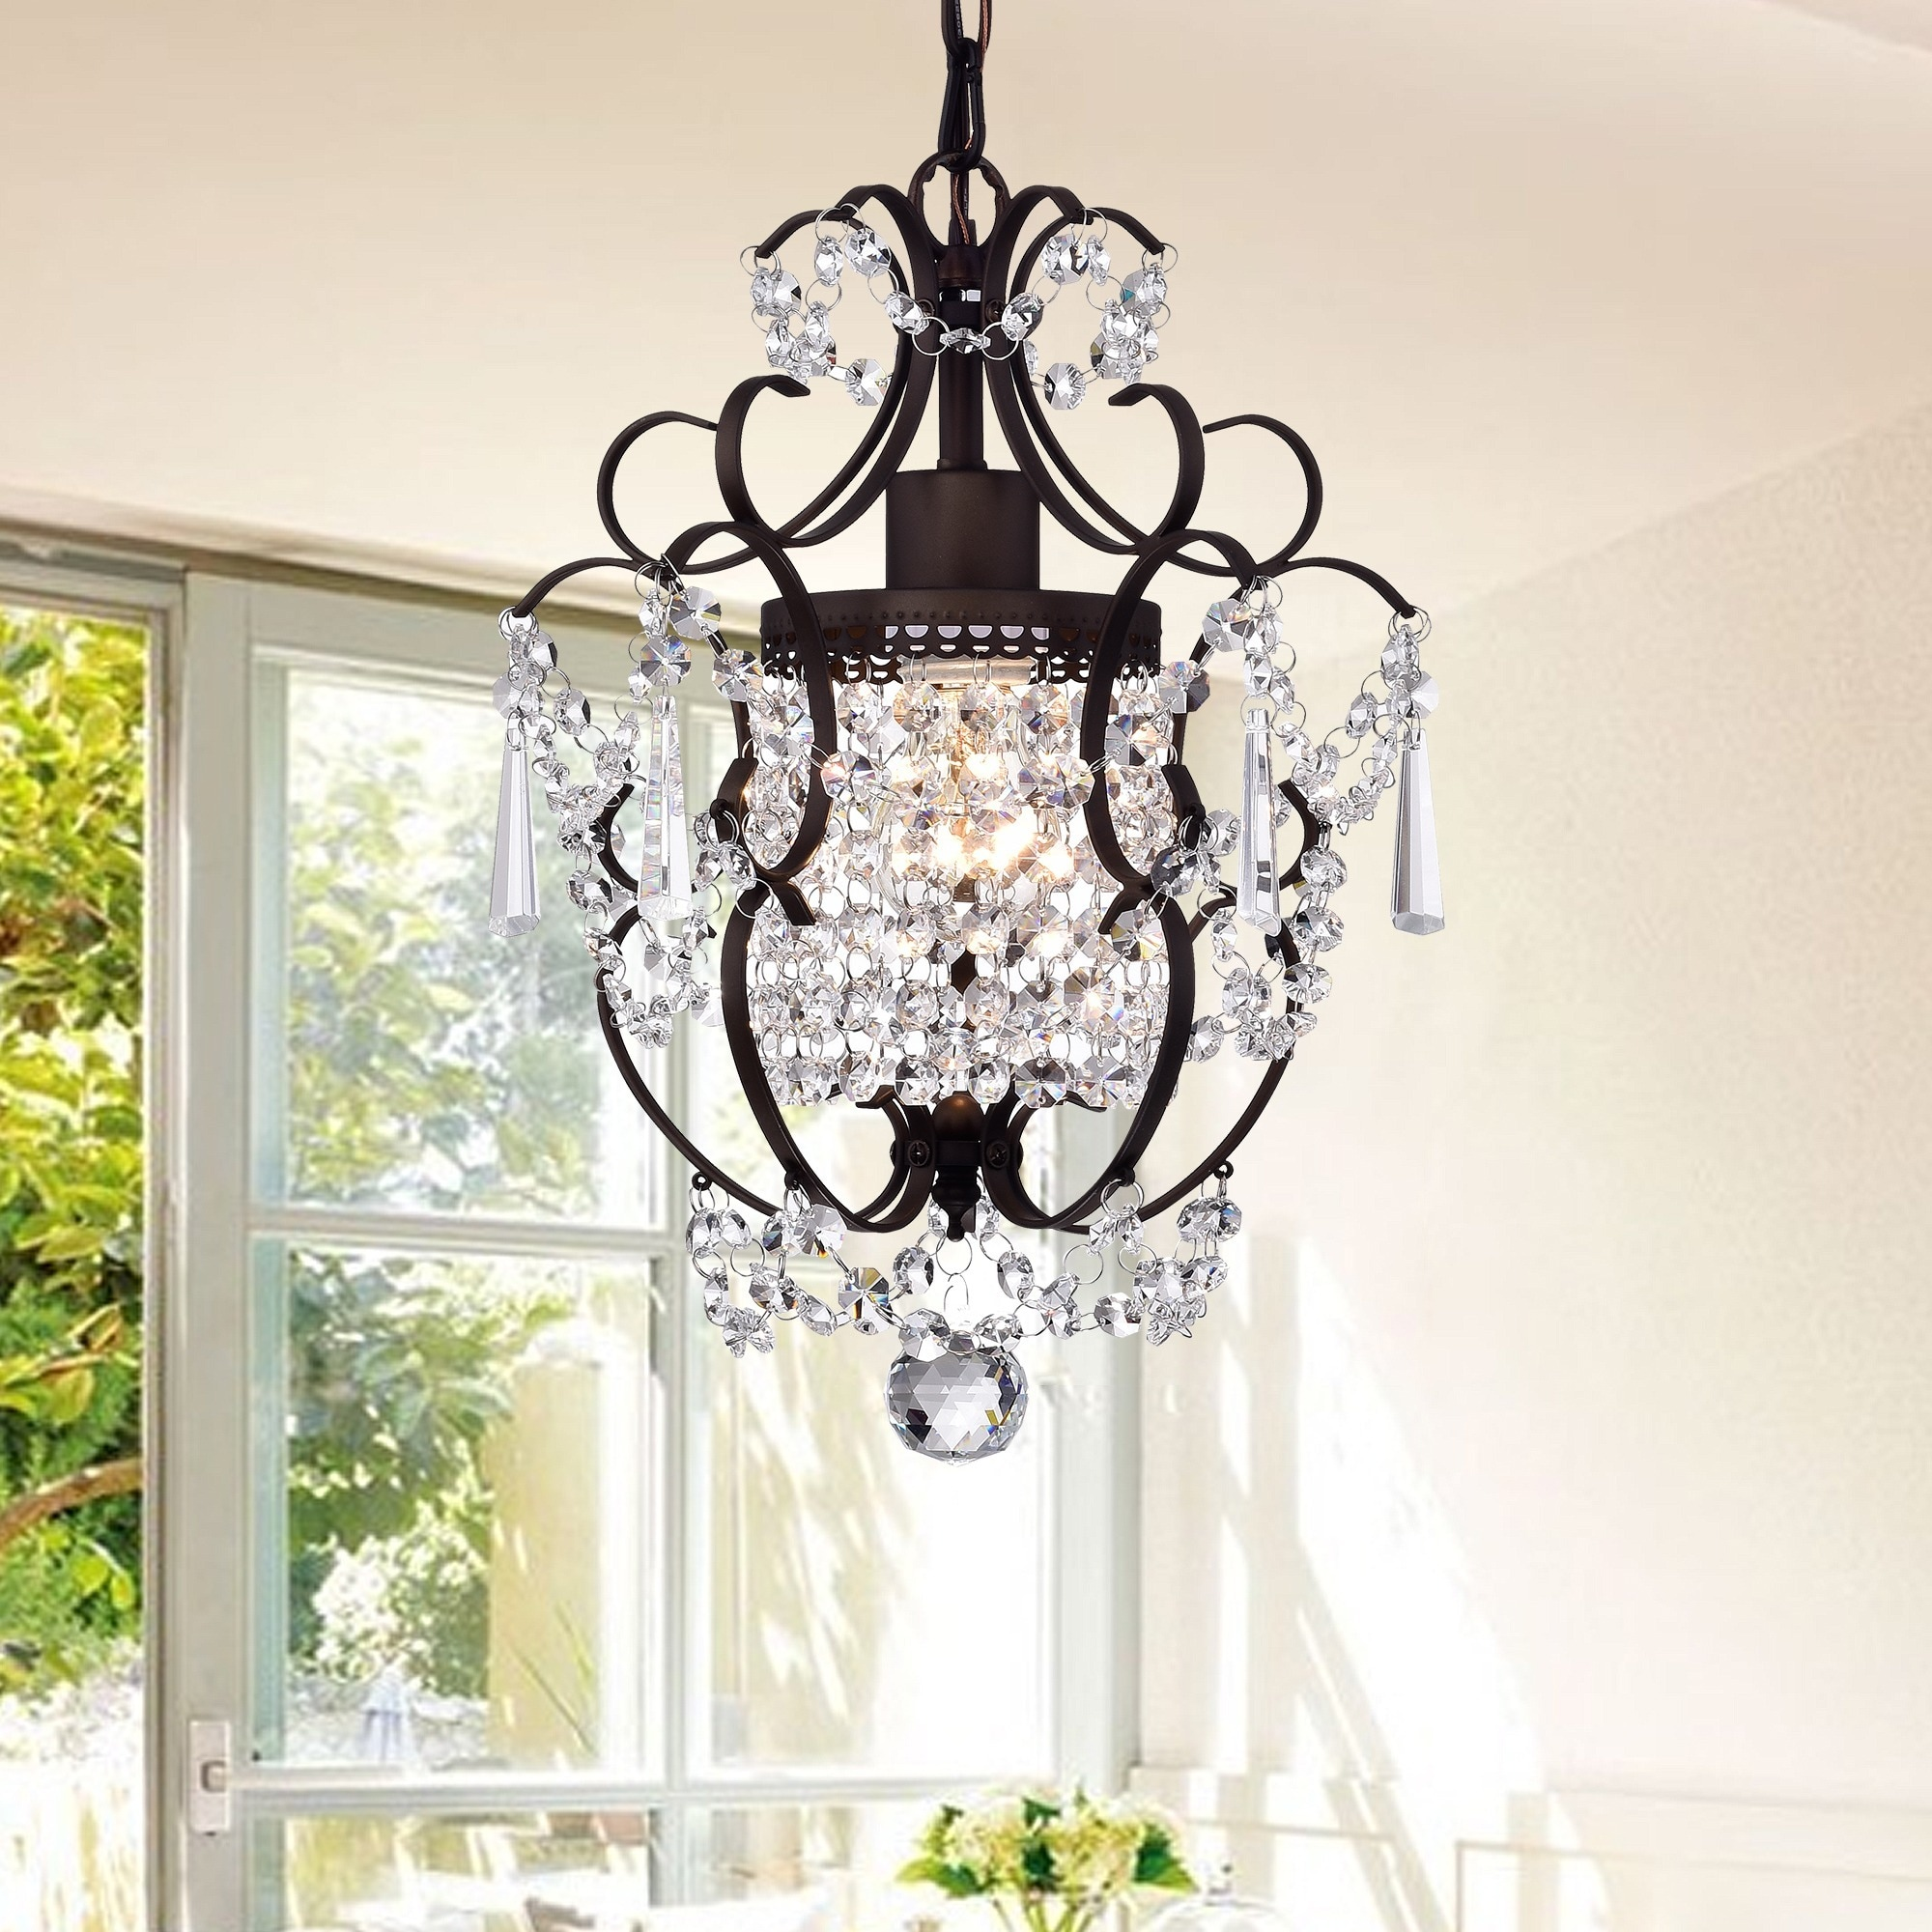 Rosalie 1 light Antique Bronze 11 inch Crystal Chandelier Free